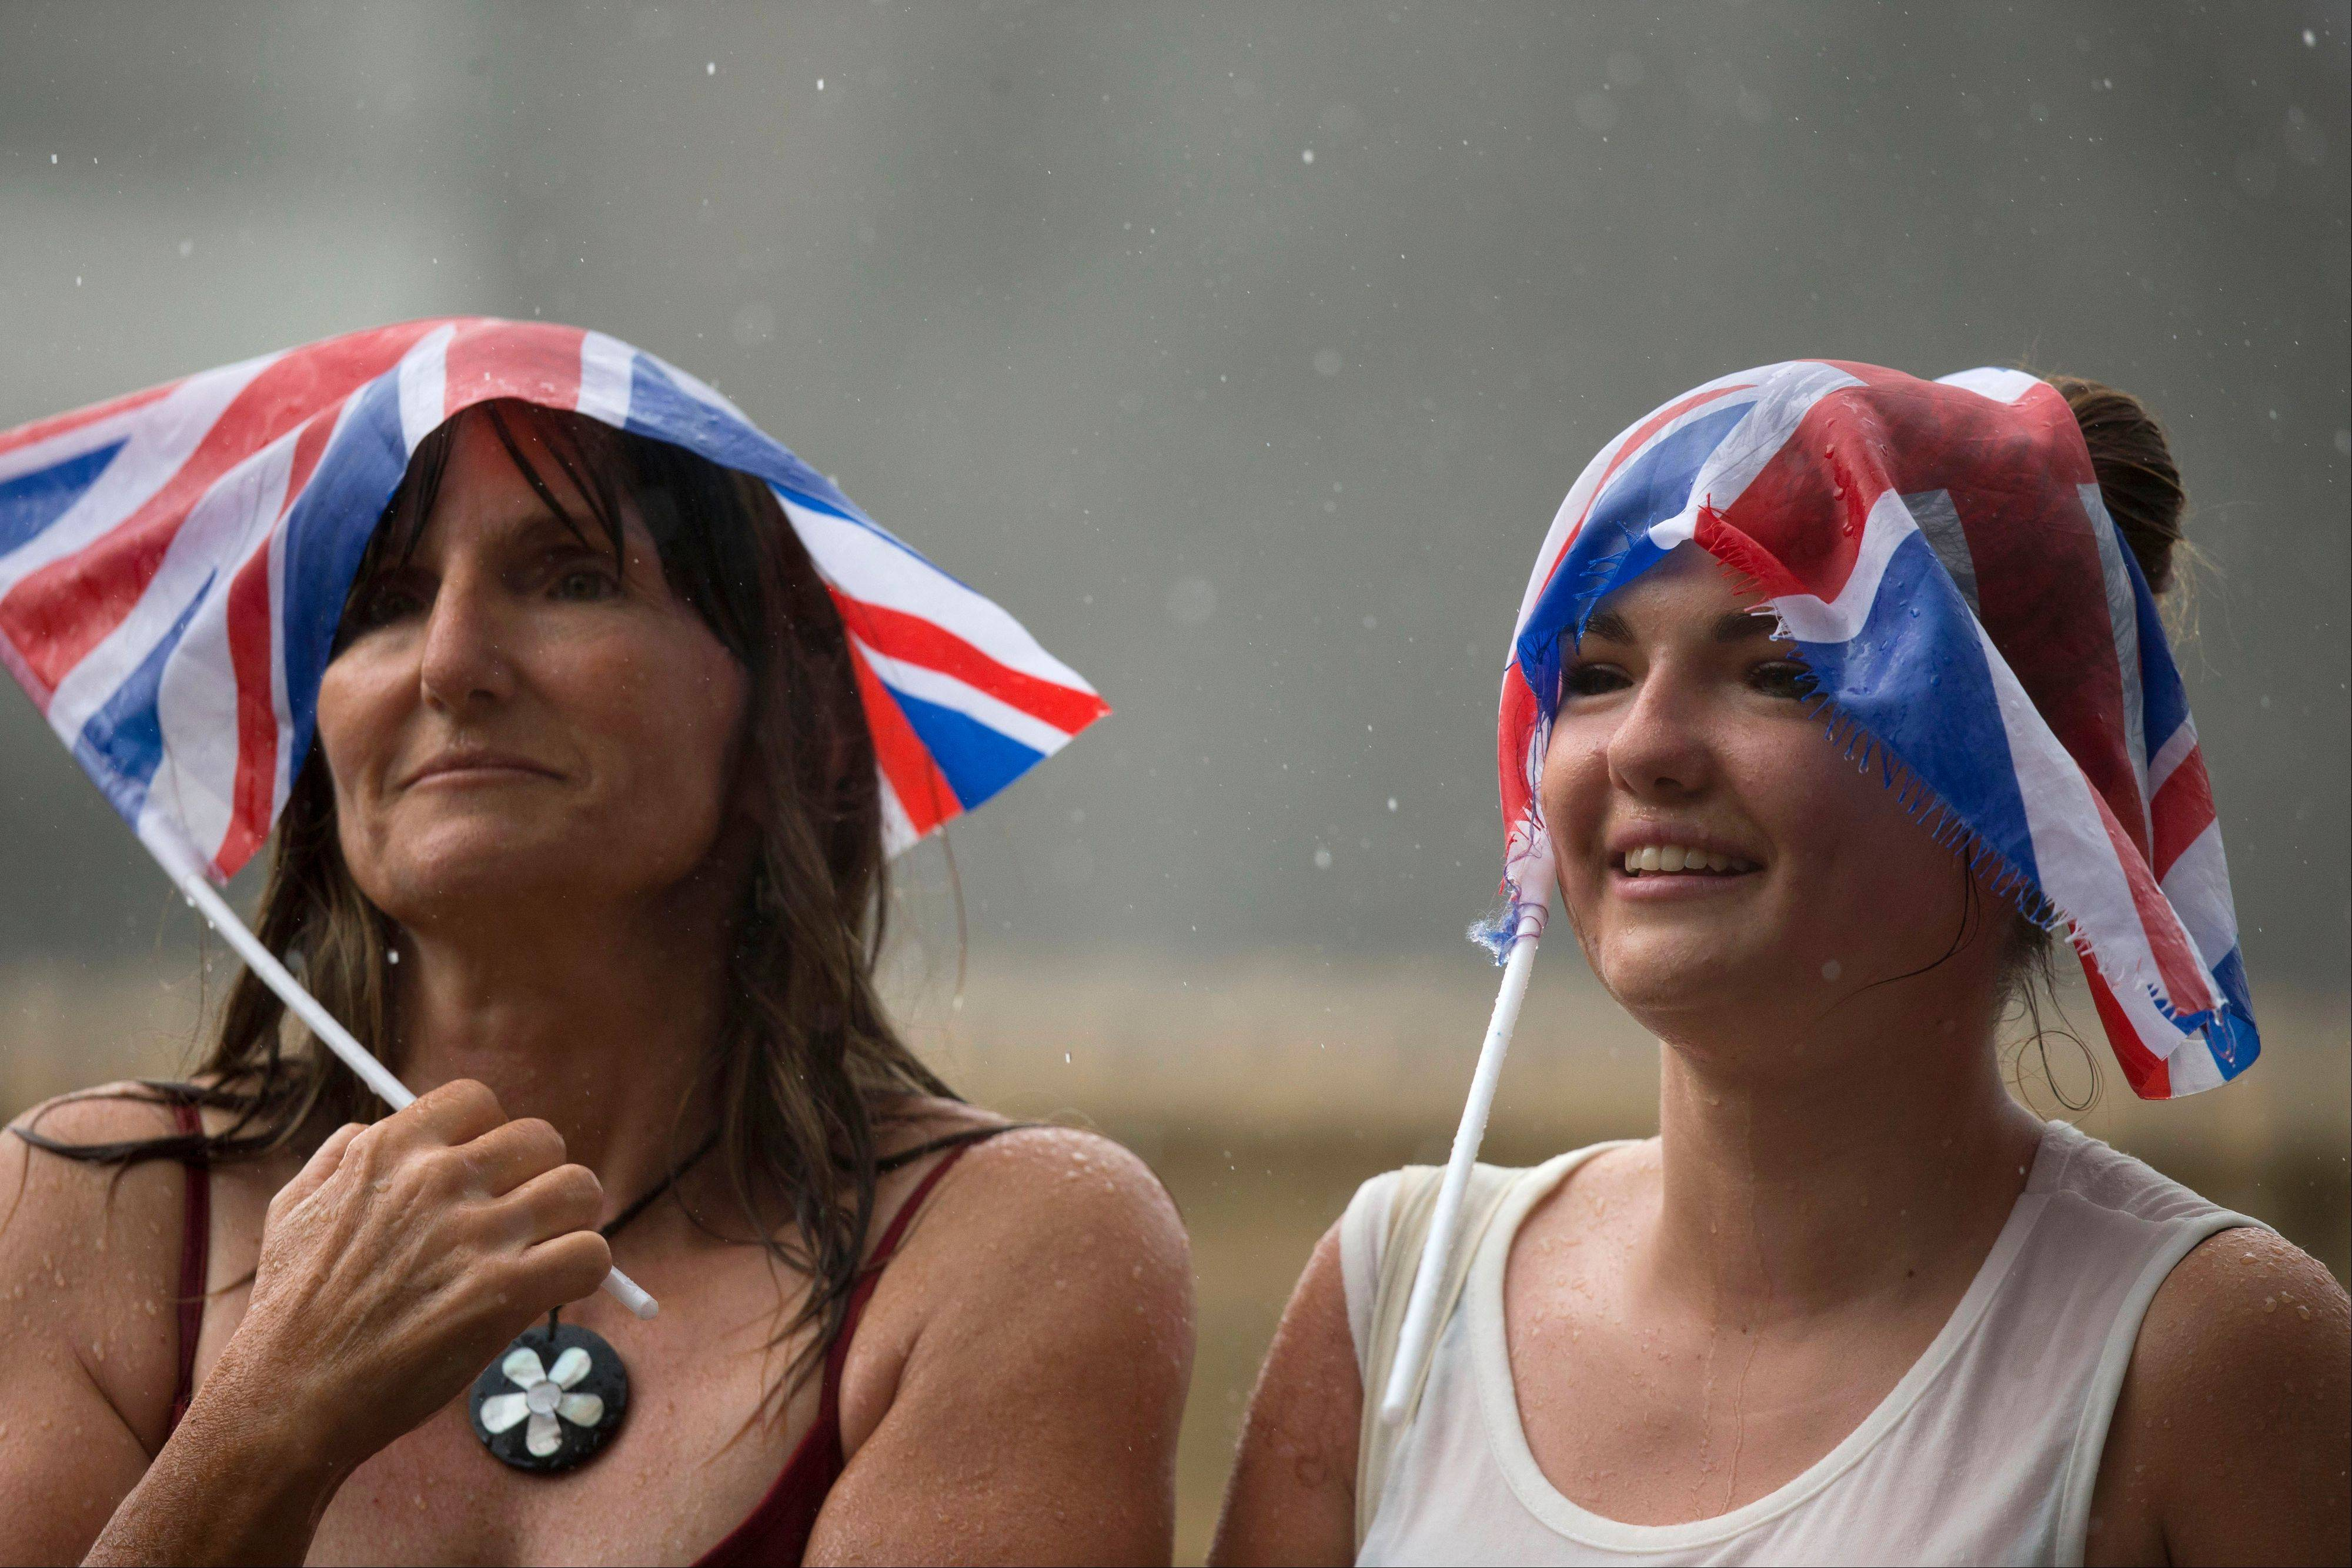 Royal supporters use Union flags to shelter from the rain as they await the departure of Britain's Prince William, Kate, Duchess of Cambridge and the Prince of Cambridge, outside the entrance of the private Lindo Wing at St. Mary's Hospital in London.